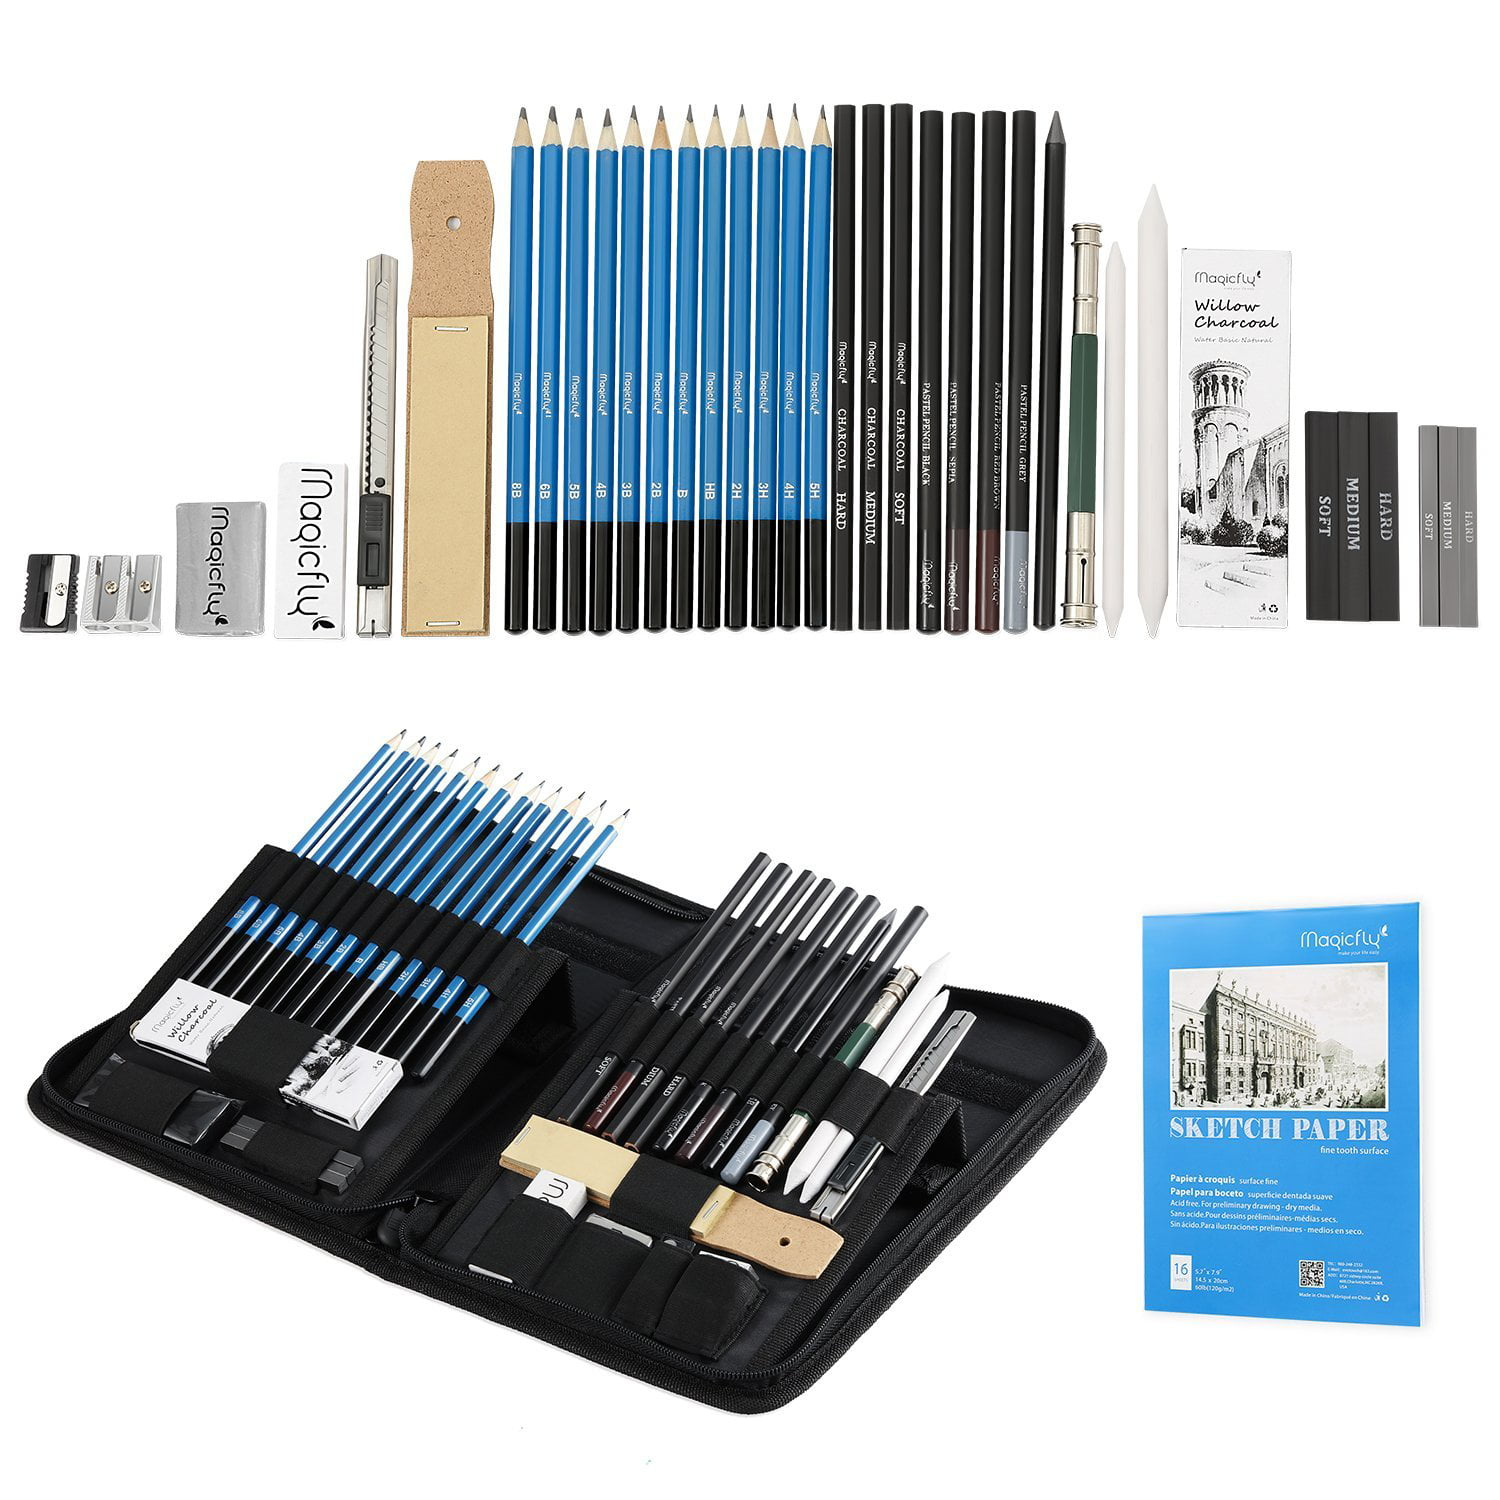 Charcoal sketching pencils set 41 pcs magicfly drawing pencil sketch set professional graphite pencil set